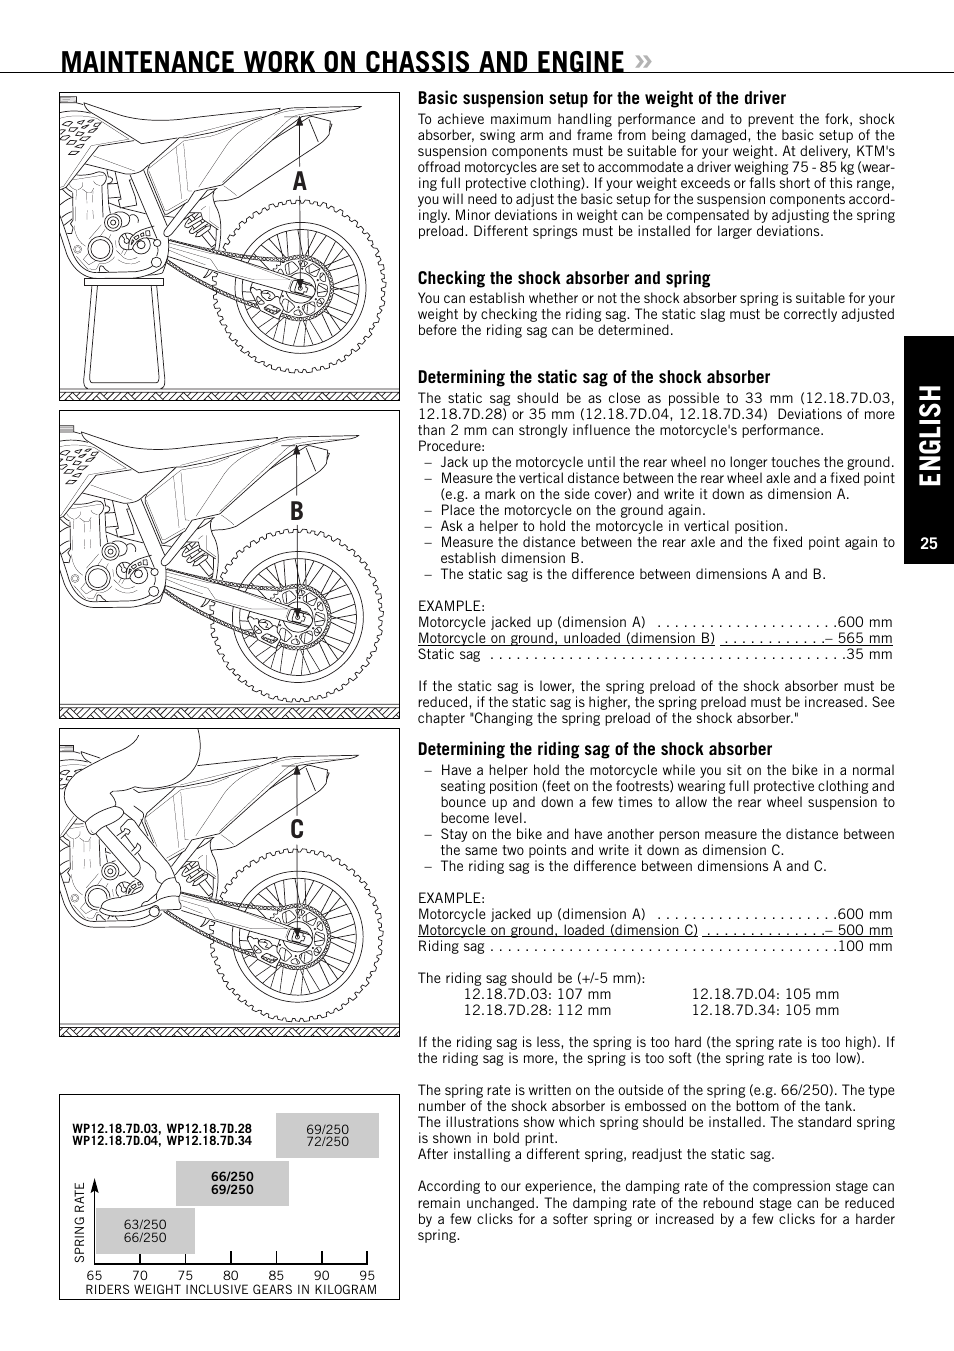 Maintenance work on chassis and engine, English, Ab c | KTM EXC-F